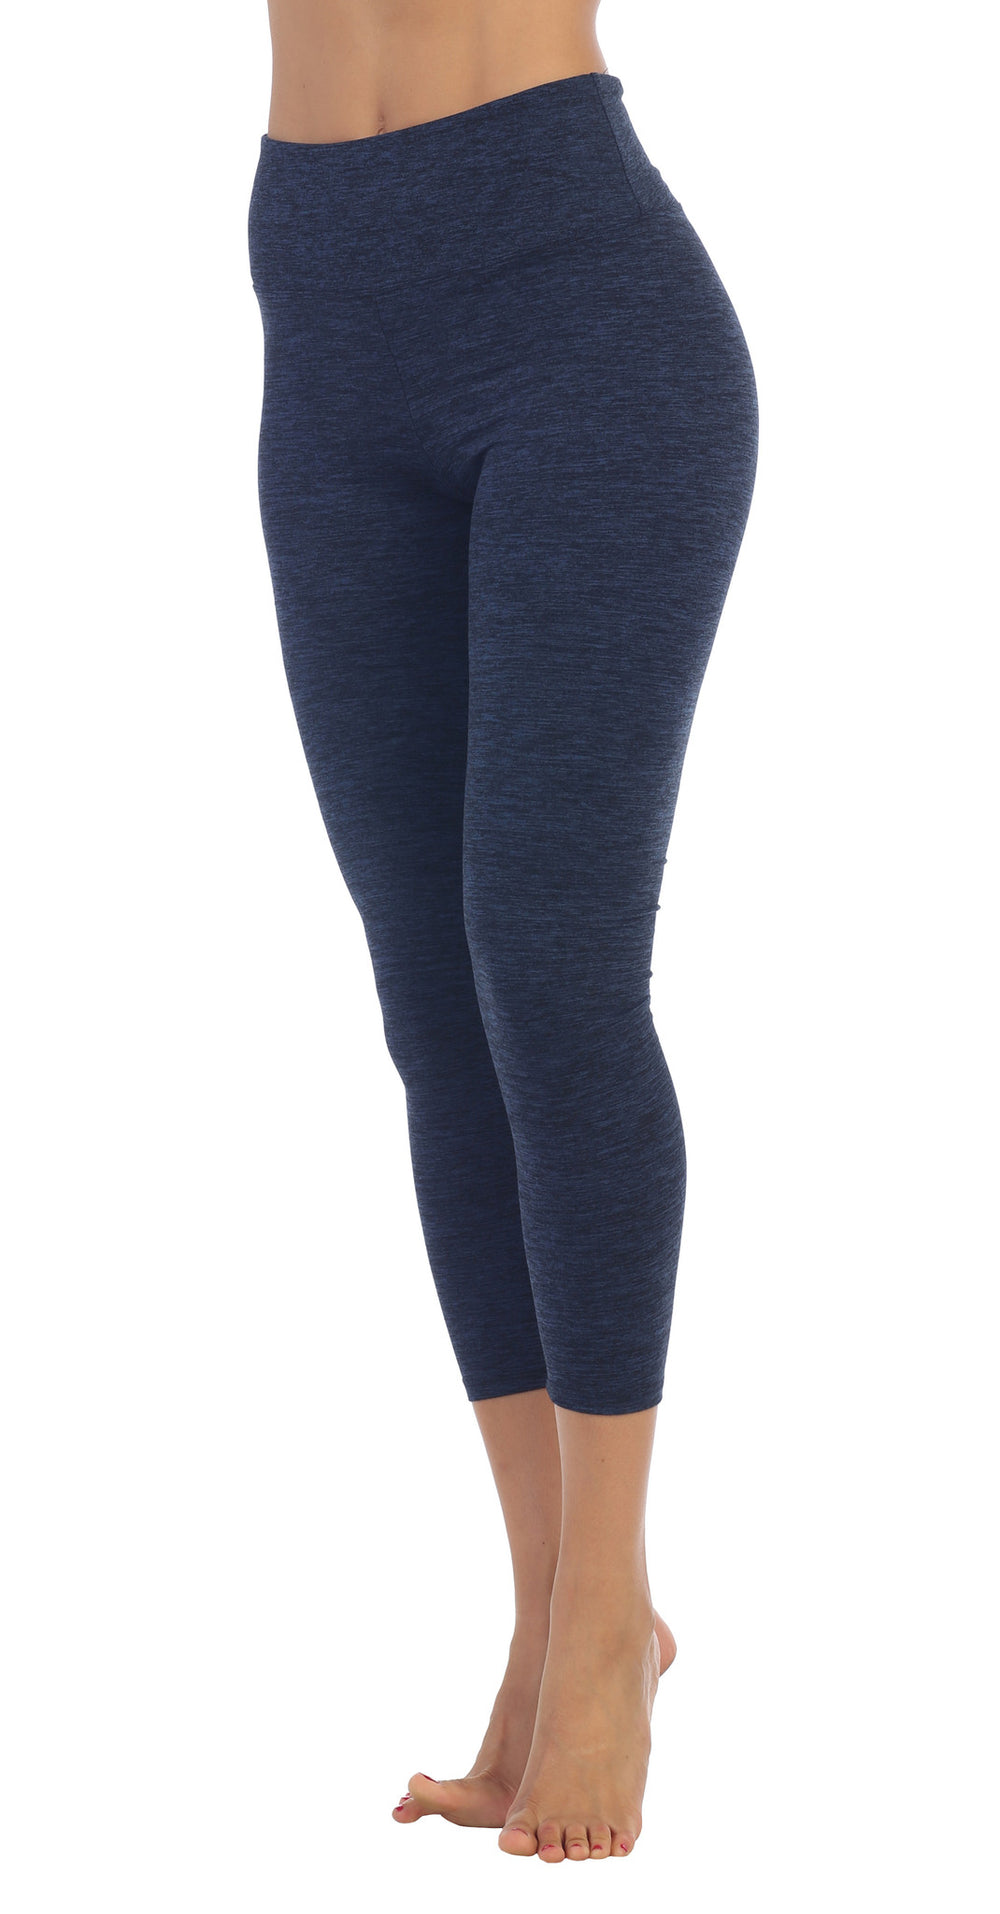 Womens SpaceDye Heather Blue Fold-Over High Waist 3/4 Legging front image